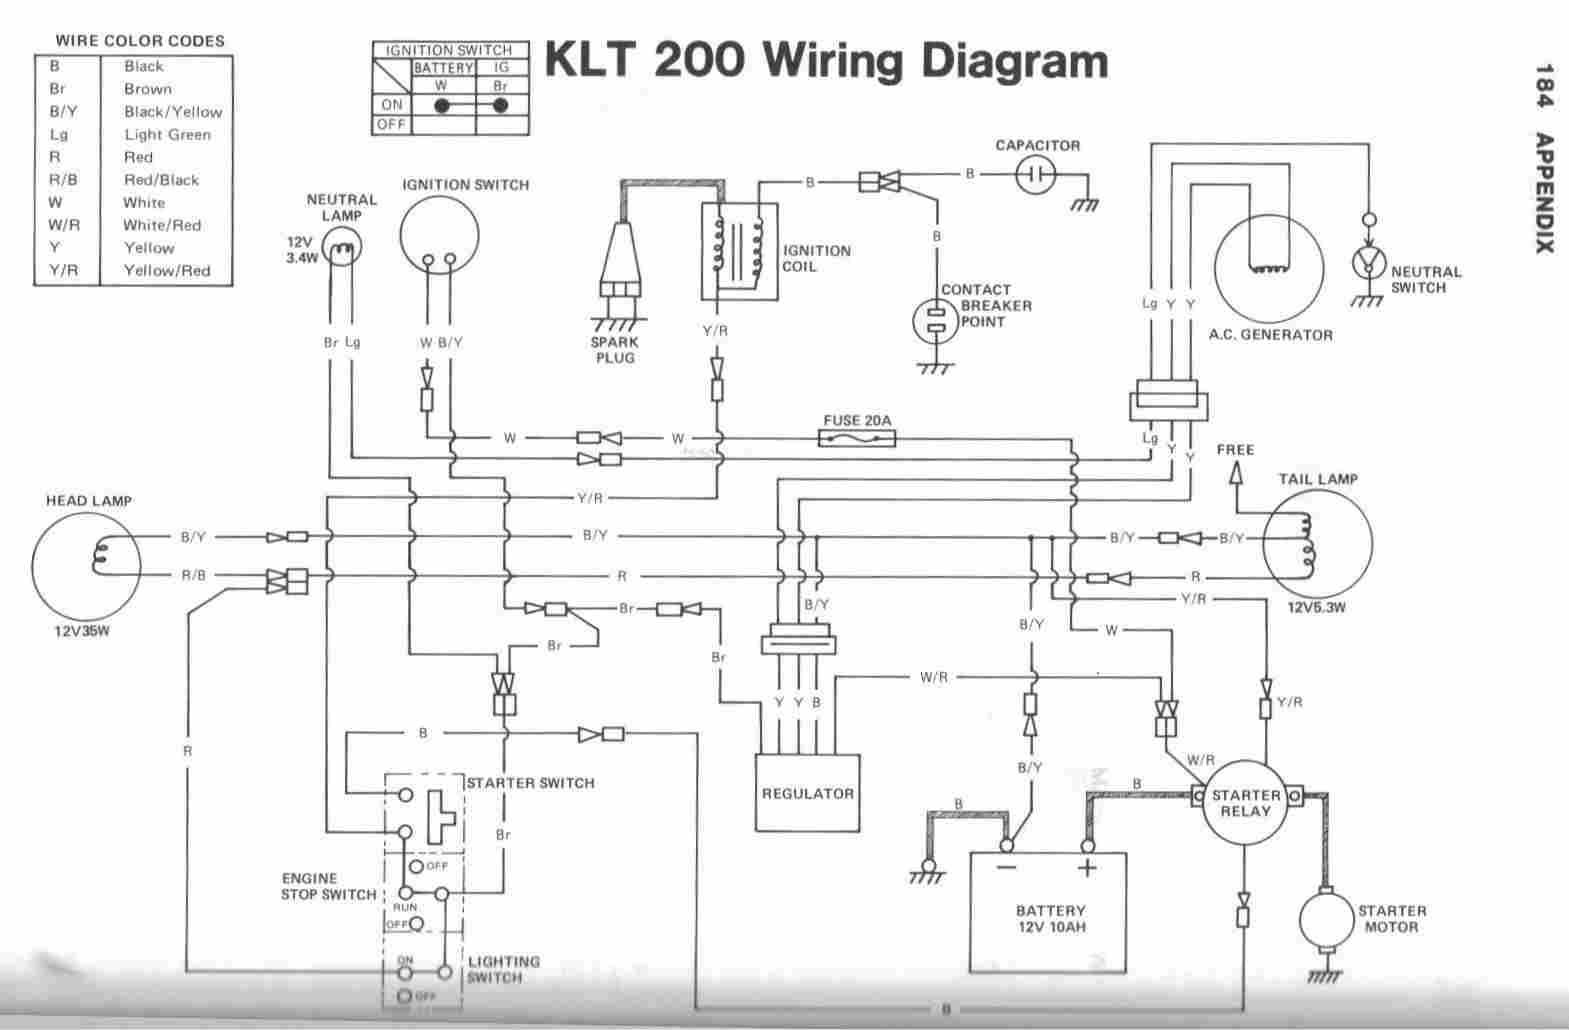 2869034594ce054a636782e5c44b61b4 residential electrical wiring diagrams pdf easy routing cool electrical circuit diagrams pdf at gsmx.co